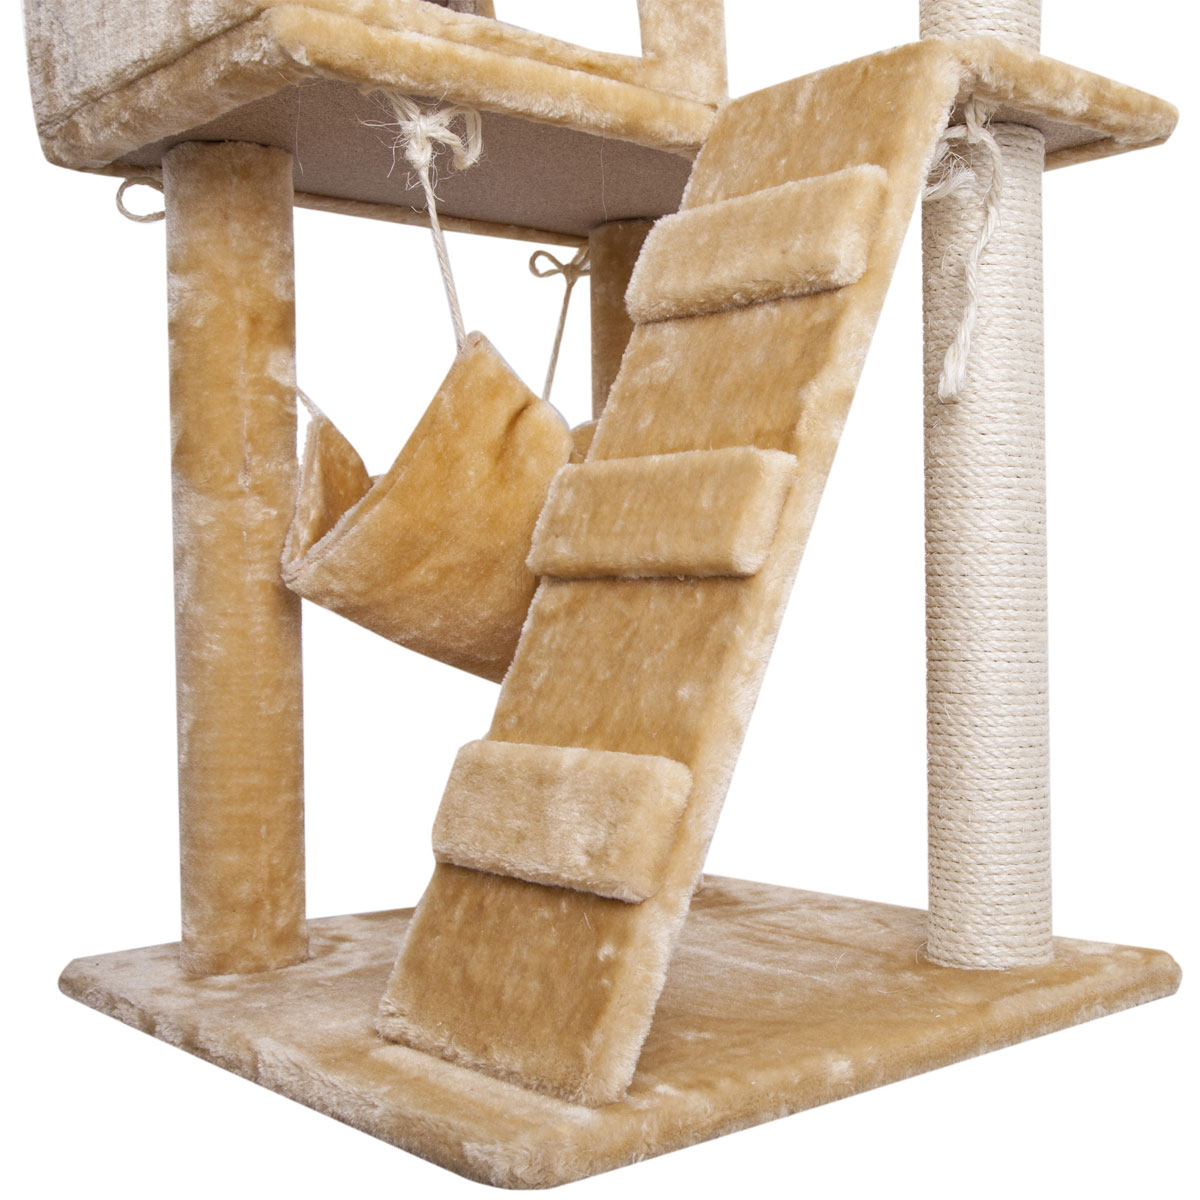 The gallery for diy cat tree house for Cat tree blueprints